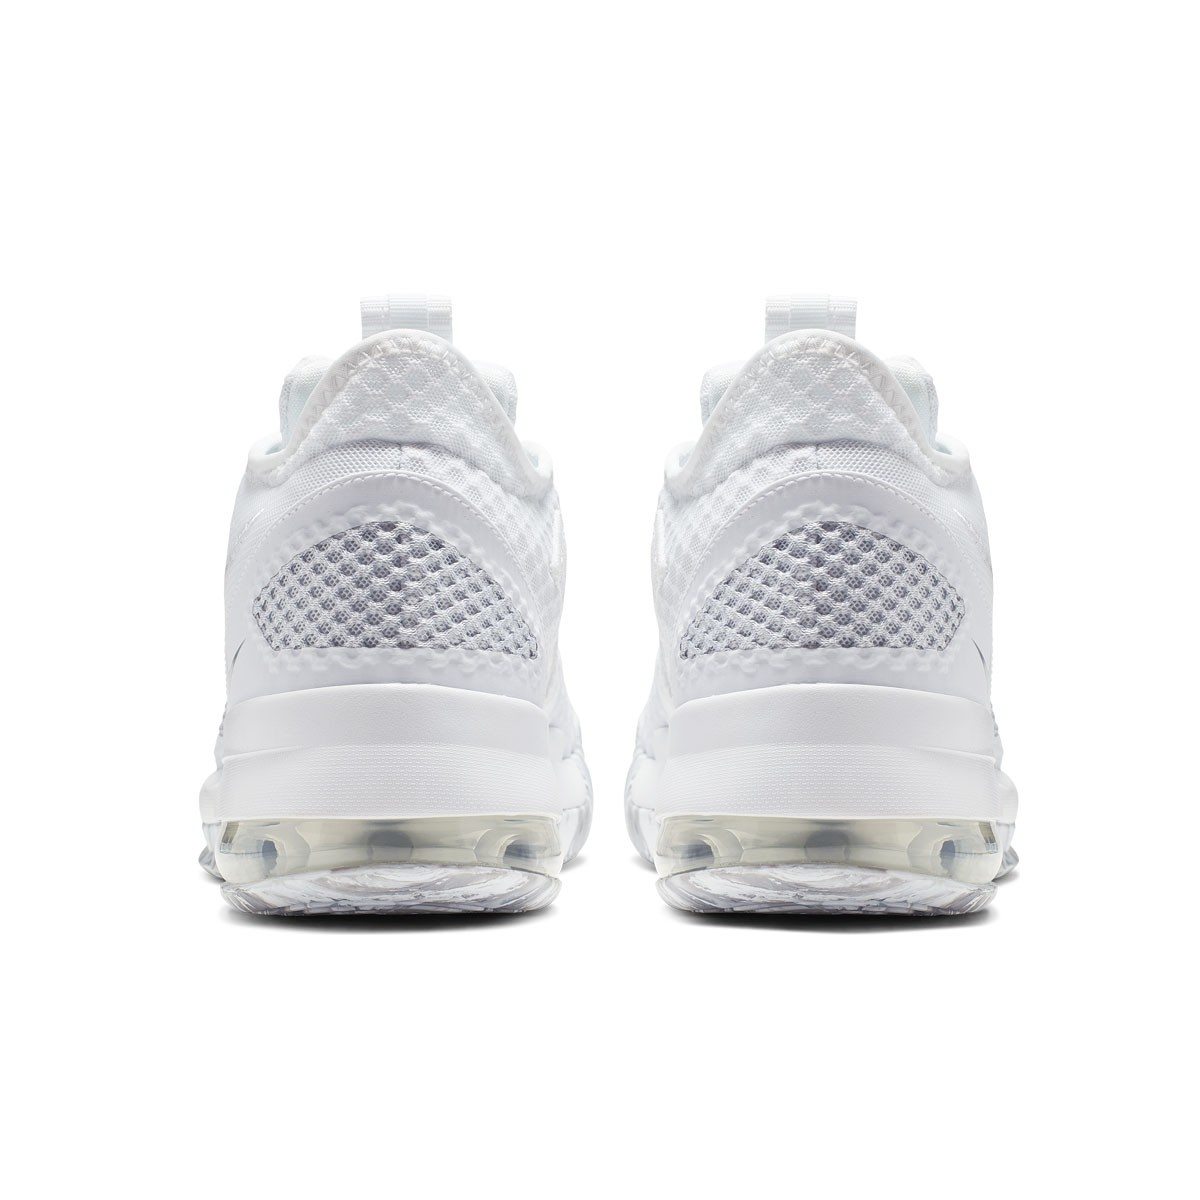 Nike Air Force Max Low 'White Marble' BV0651-100